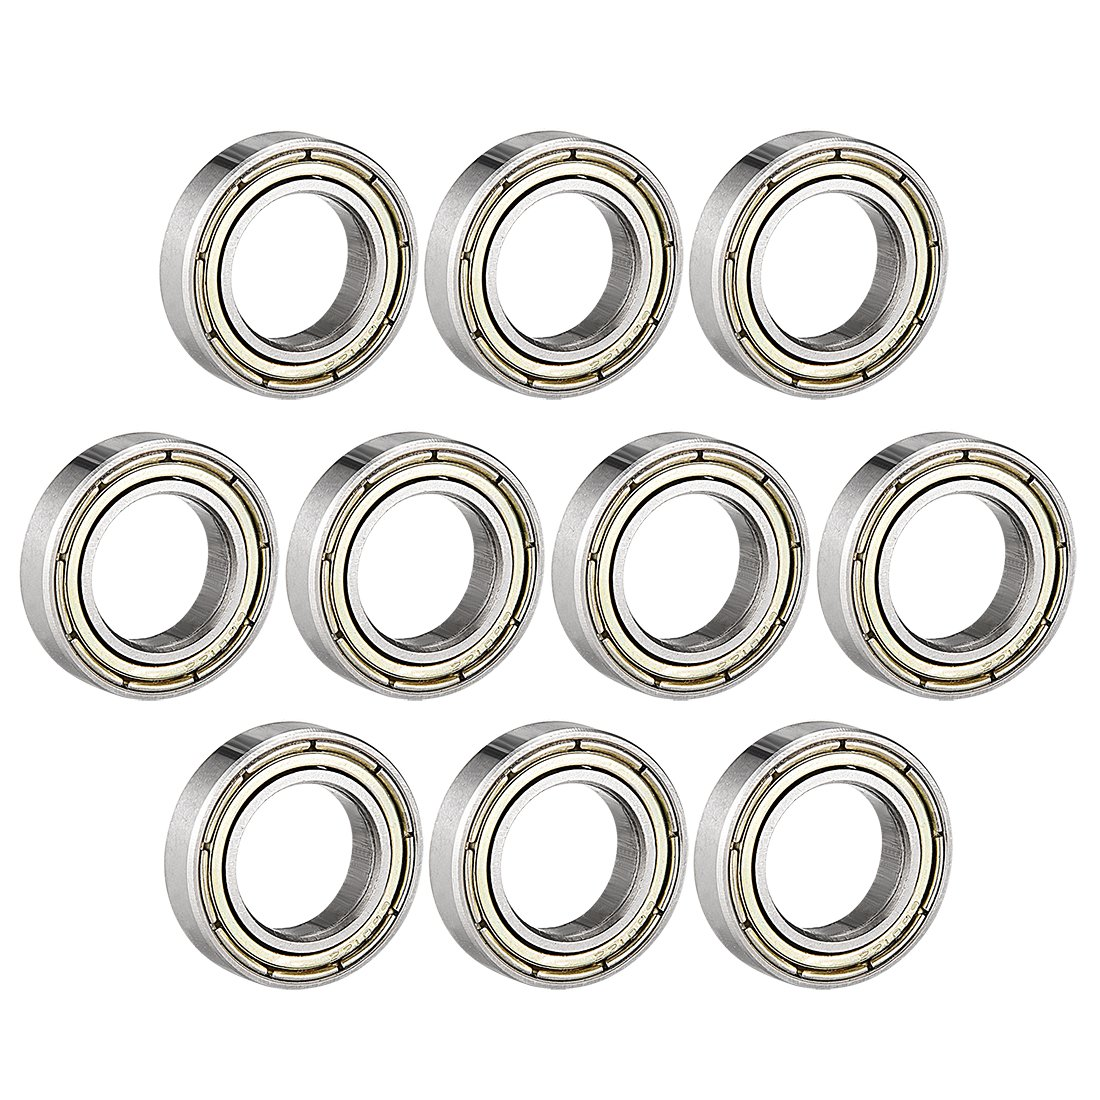 sourcing map 6801ZZ Deep Groove Ball Bearing Double Shield 6801-2Z 1080801, 12mm x 21mm x 5mm Carbon Steel Bearings (Pack of 10) a18060900ux0391